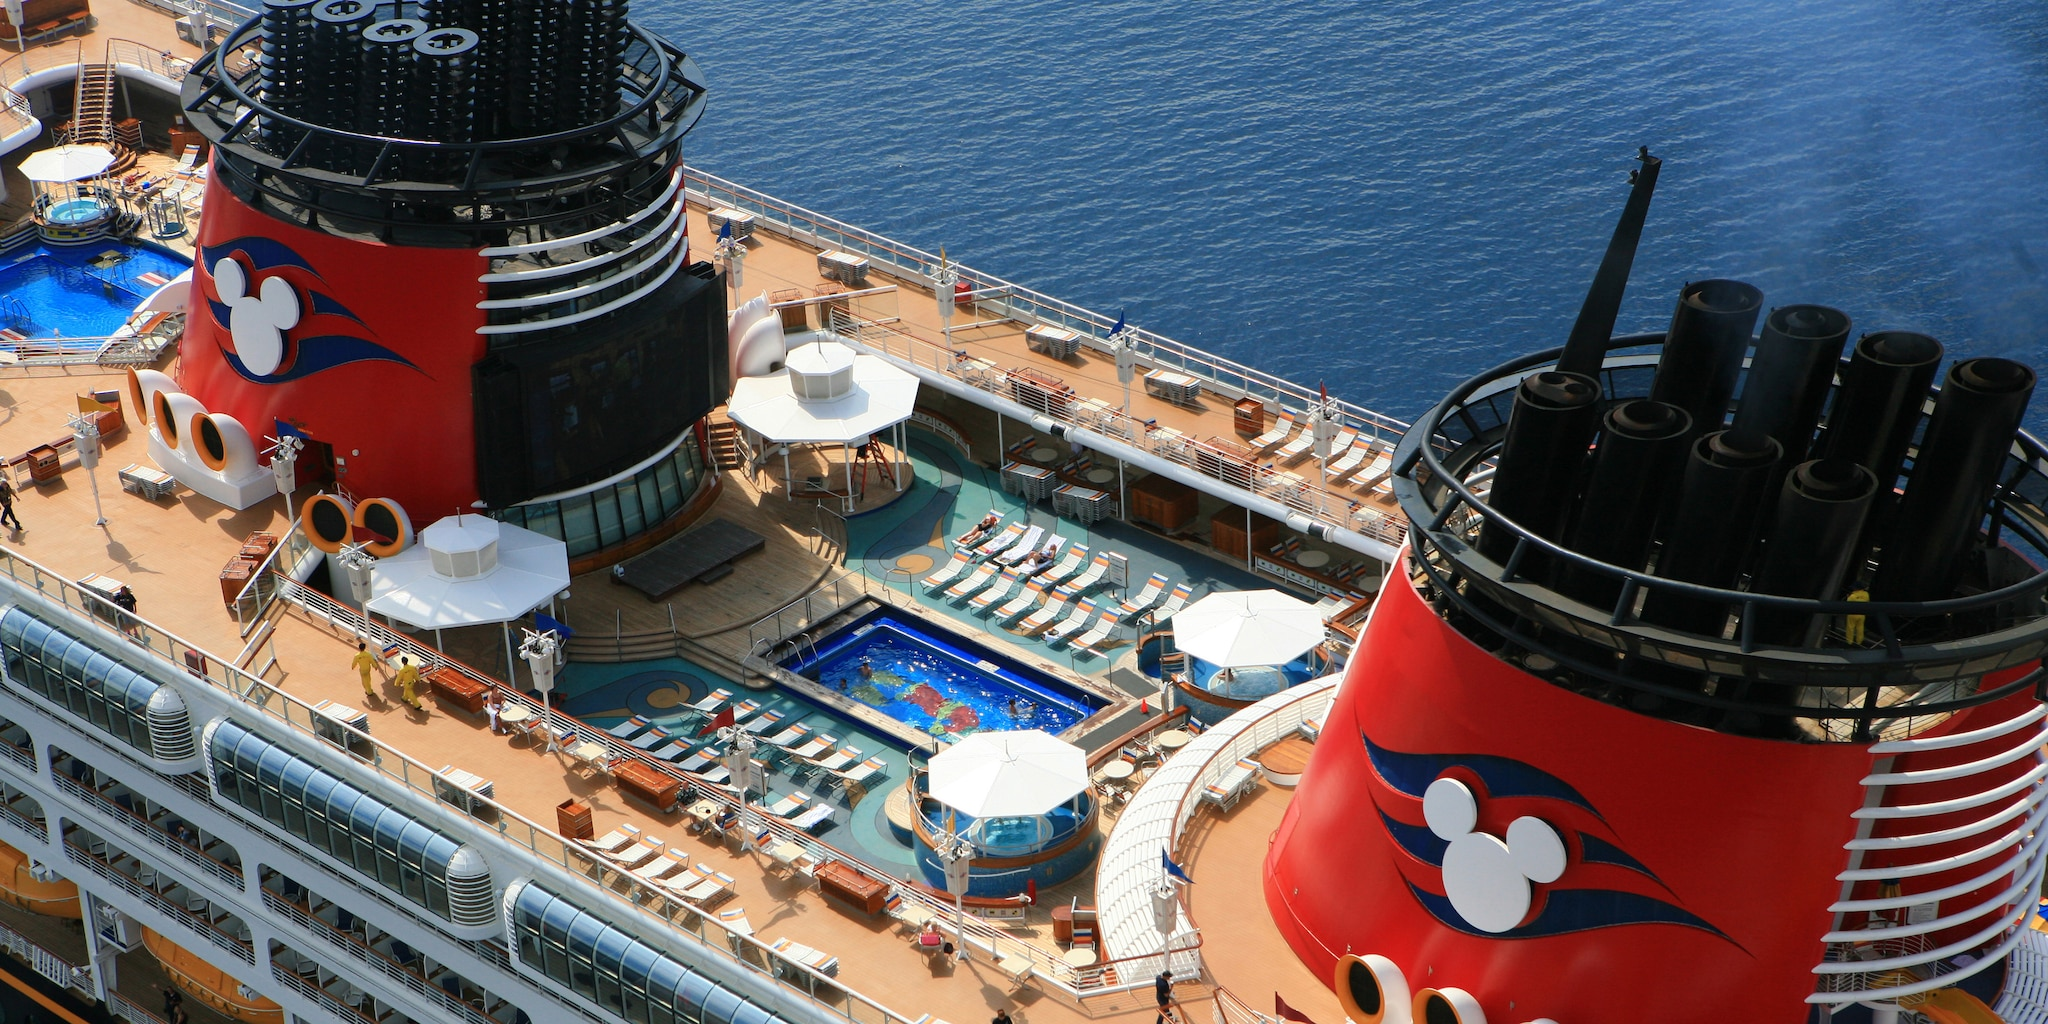 The pool and upper deck of the Disney Magic® Cruise Ship